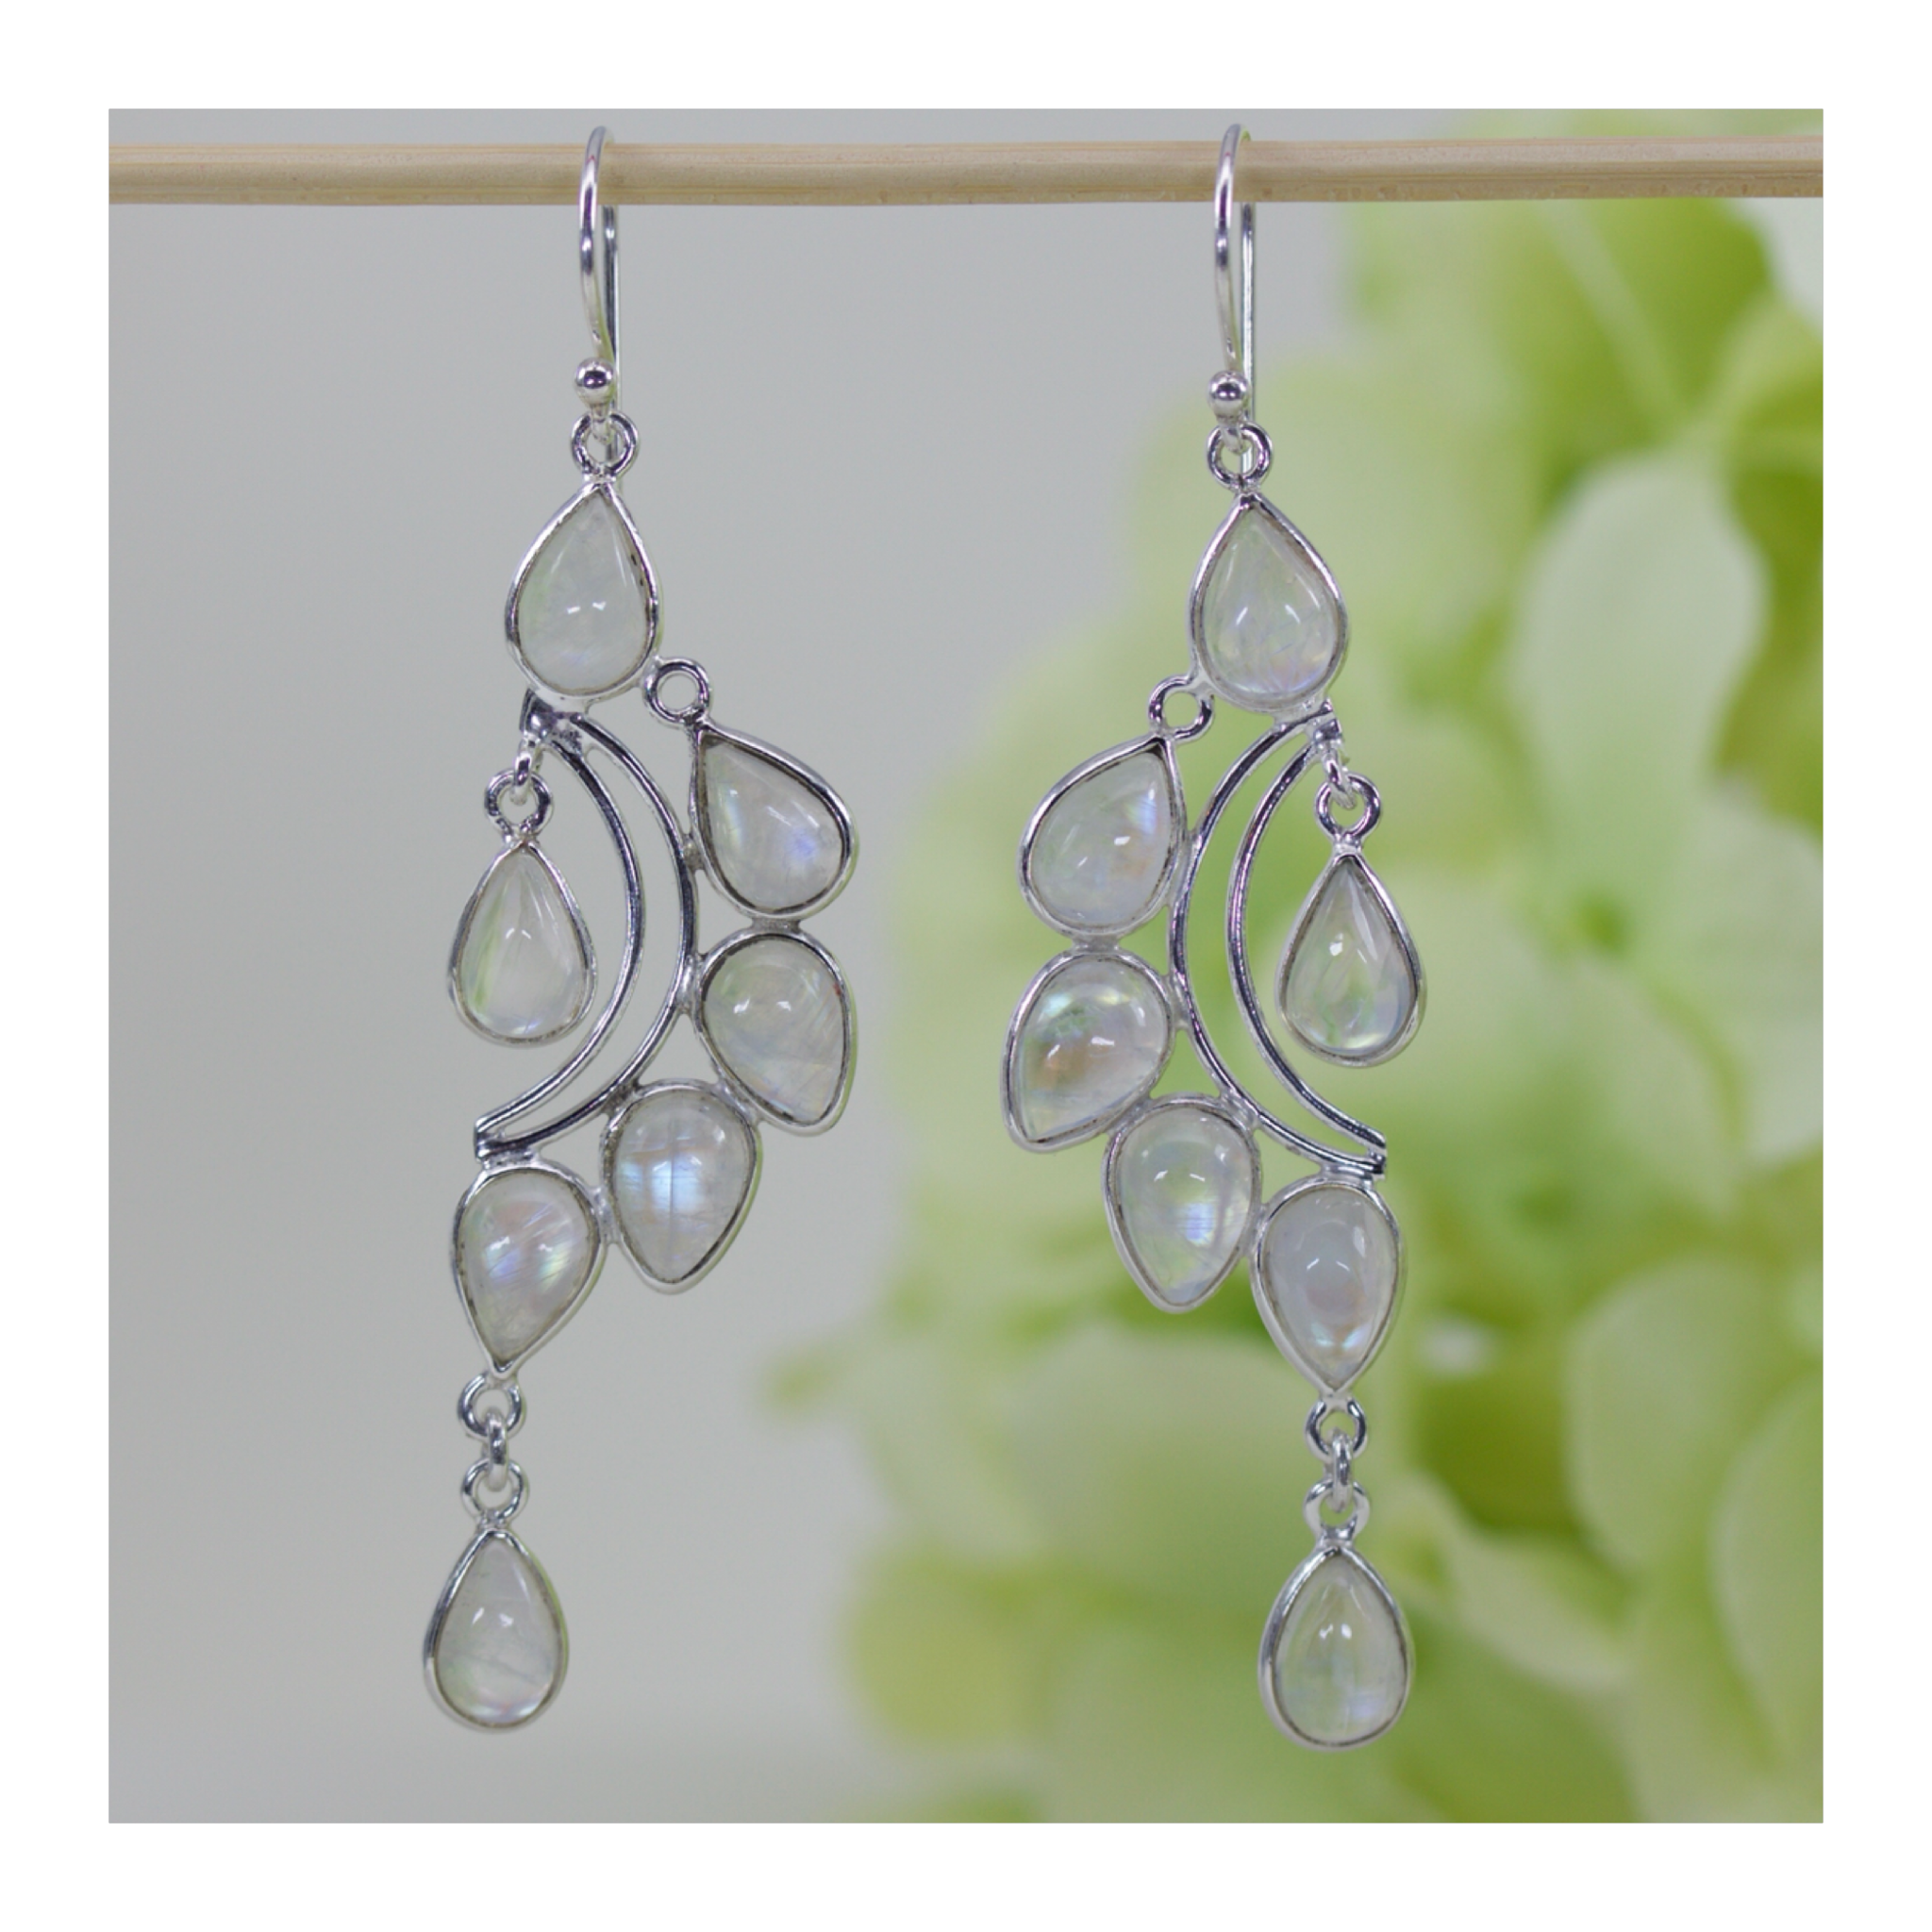 chandelier watermelon in style song jewellery tourmaline gypsy silver design dangle the boho gemstone earrings